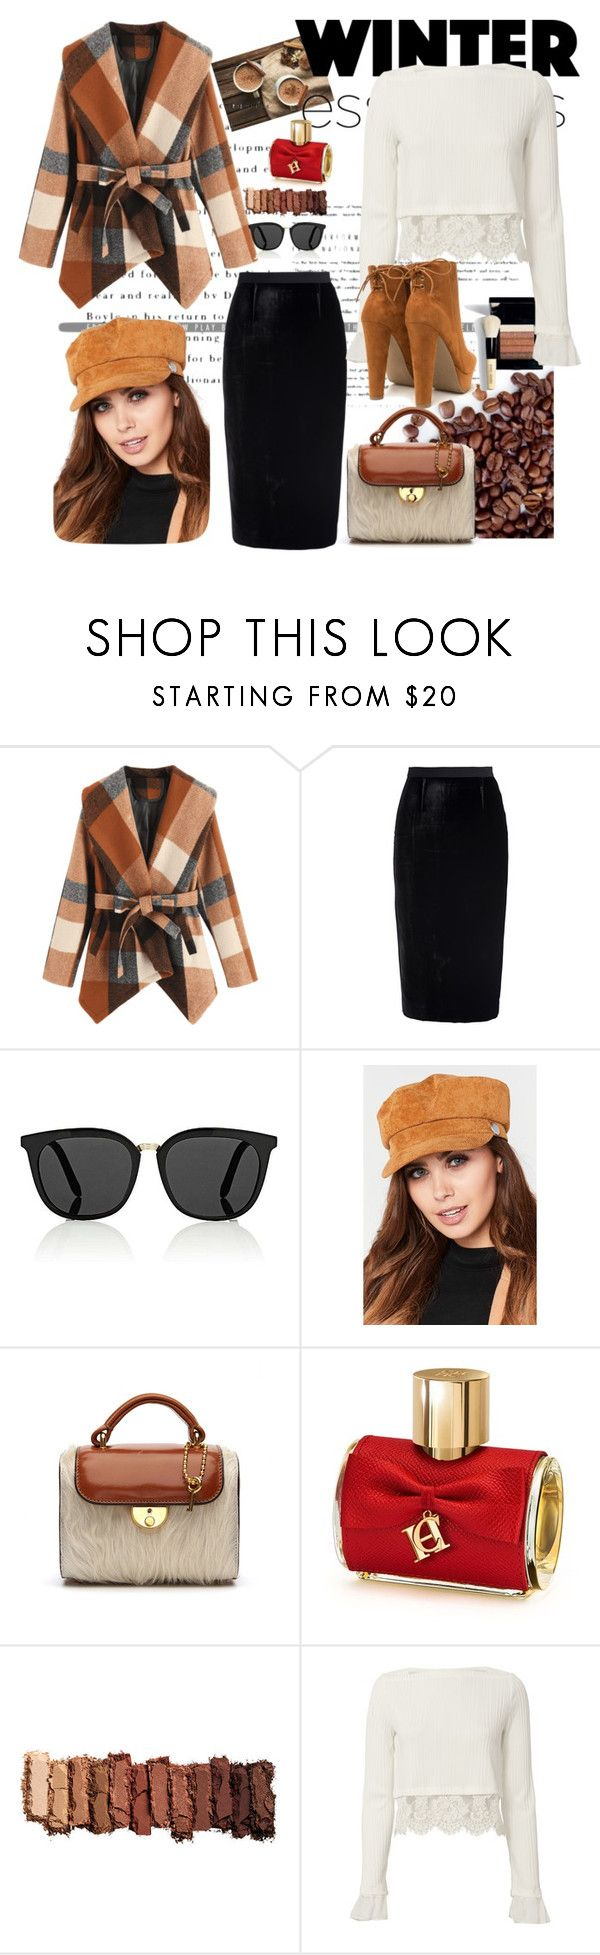 """Plaid Winter"" by verlacomplacencia ❤ liked on Polyvore featuring Roland Mouret, Victoria Beckham, Maison Margiela, Bobbi Brown Cosmetics, Carolina Herrera, Urban Decay and 3.1 Phillip Lim"